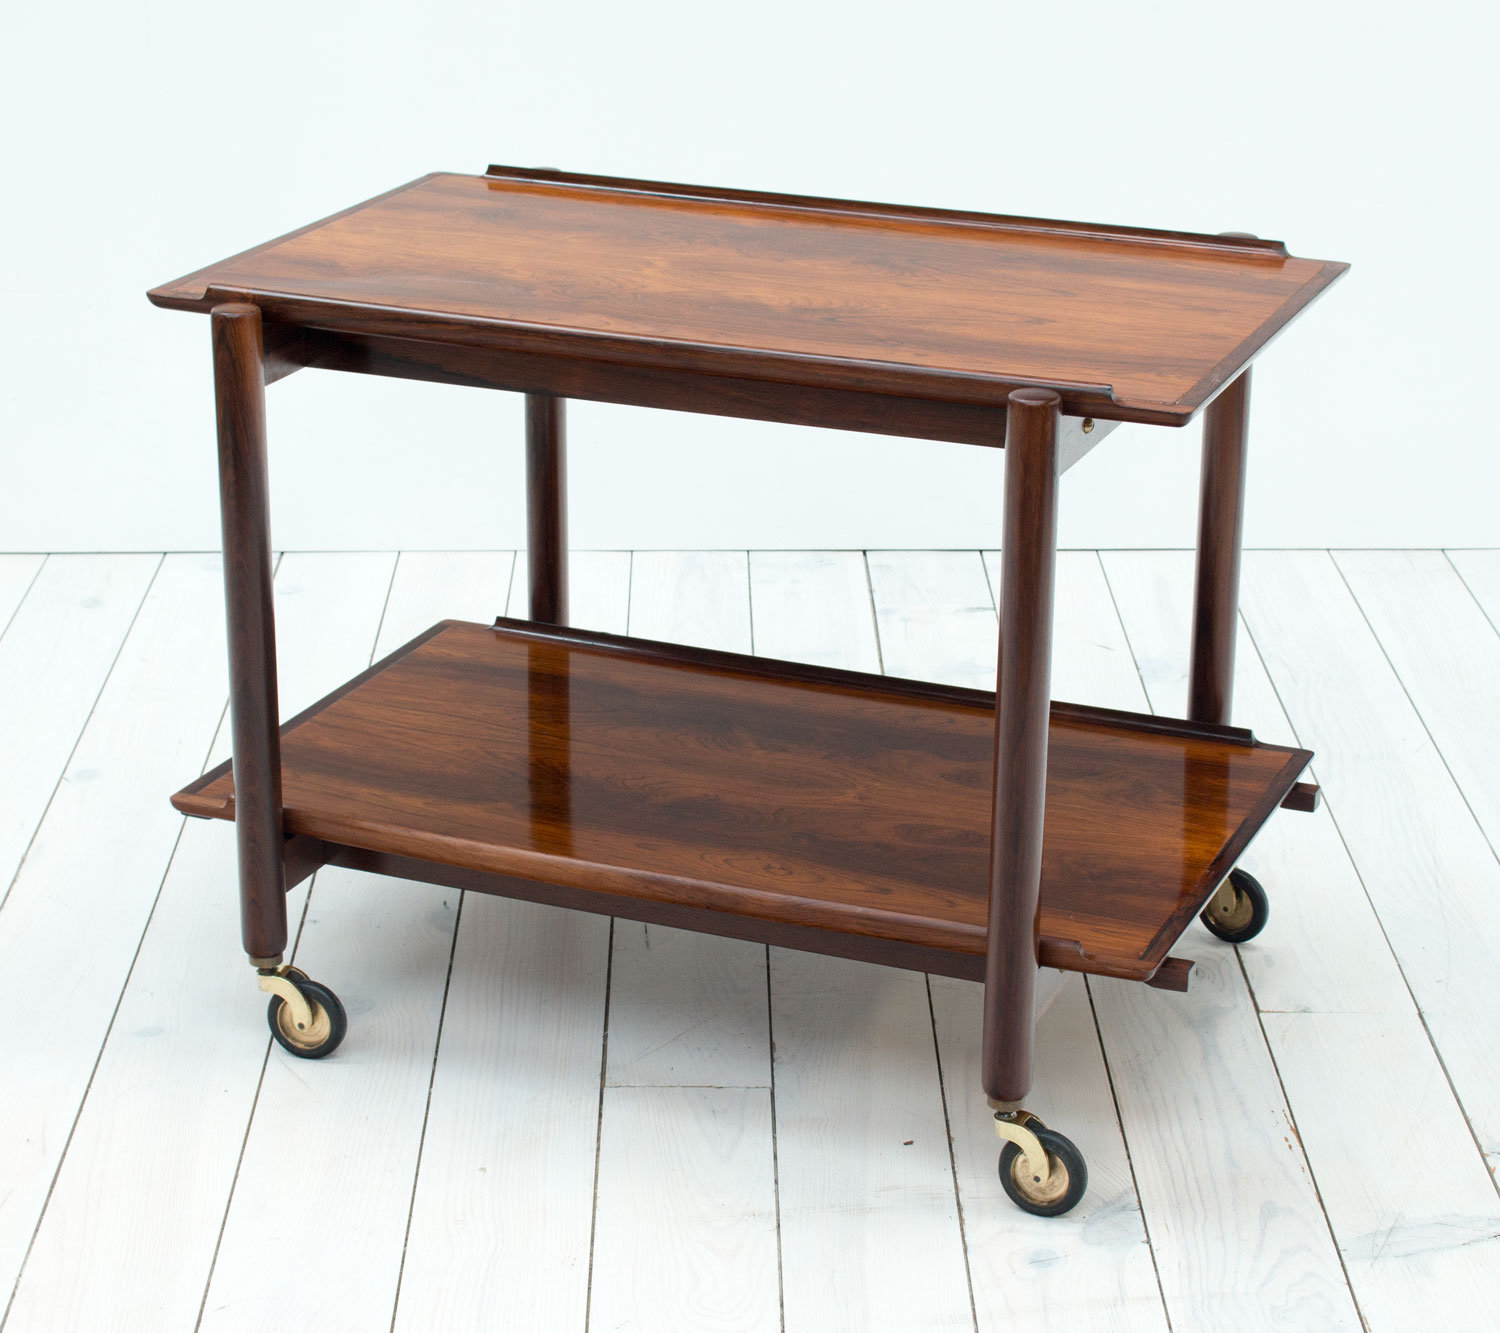 Danish Rosewood Drinks/Serving Trolley by Poul Hundevad